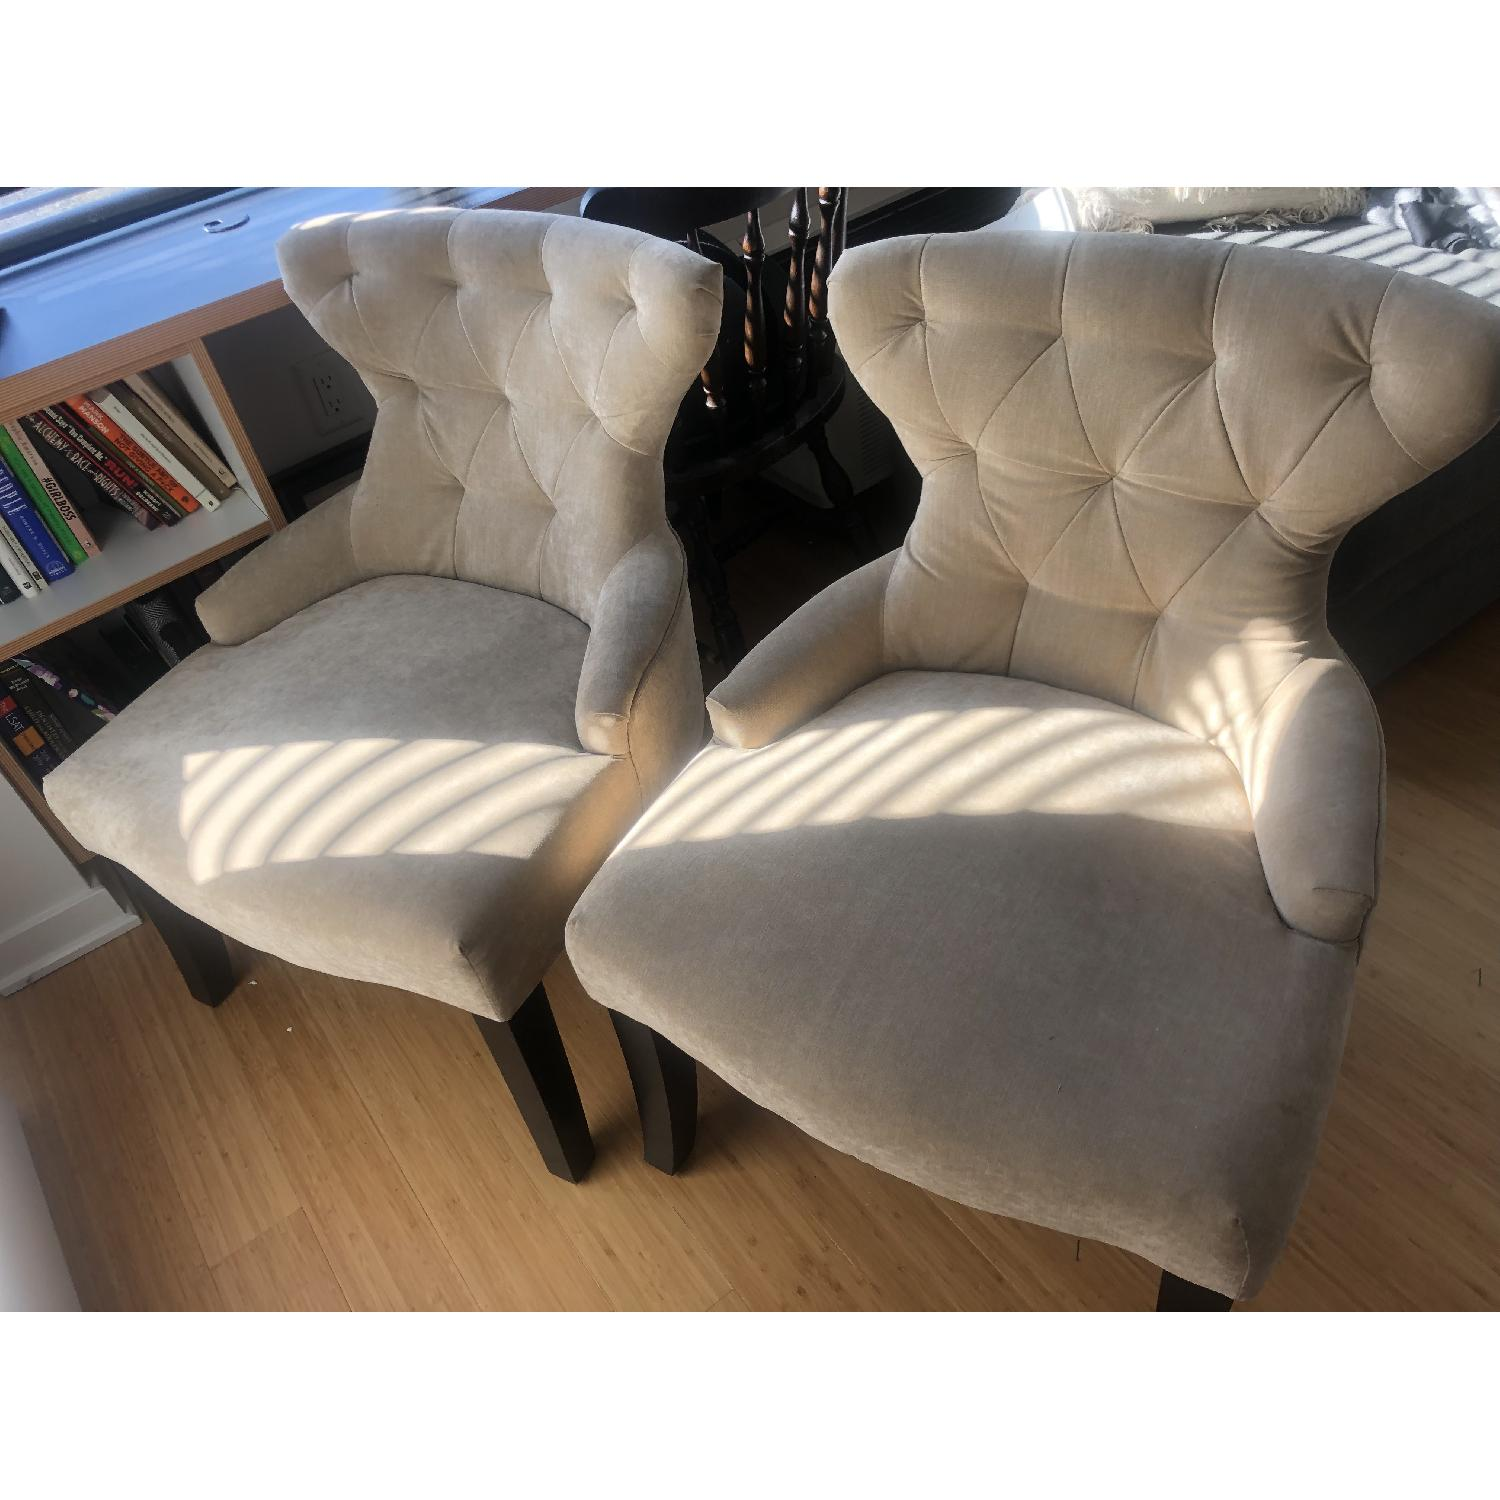 Tufted Accent Chairs - image-2